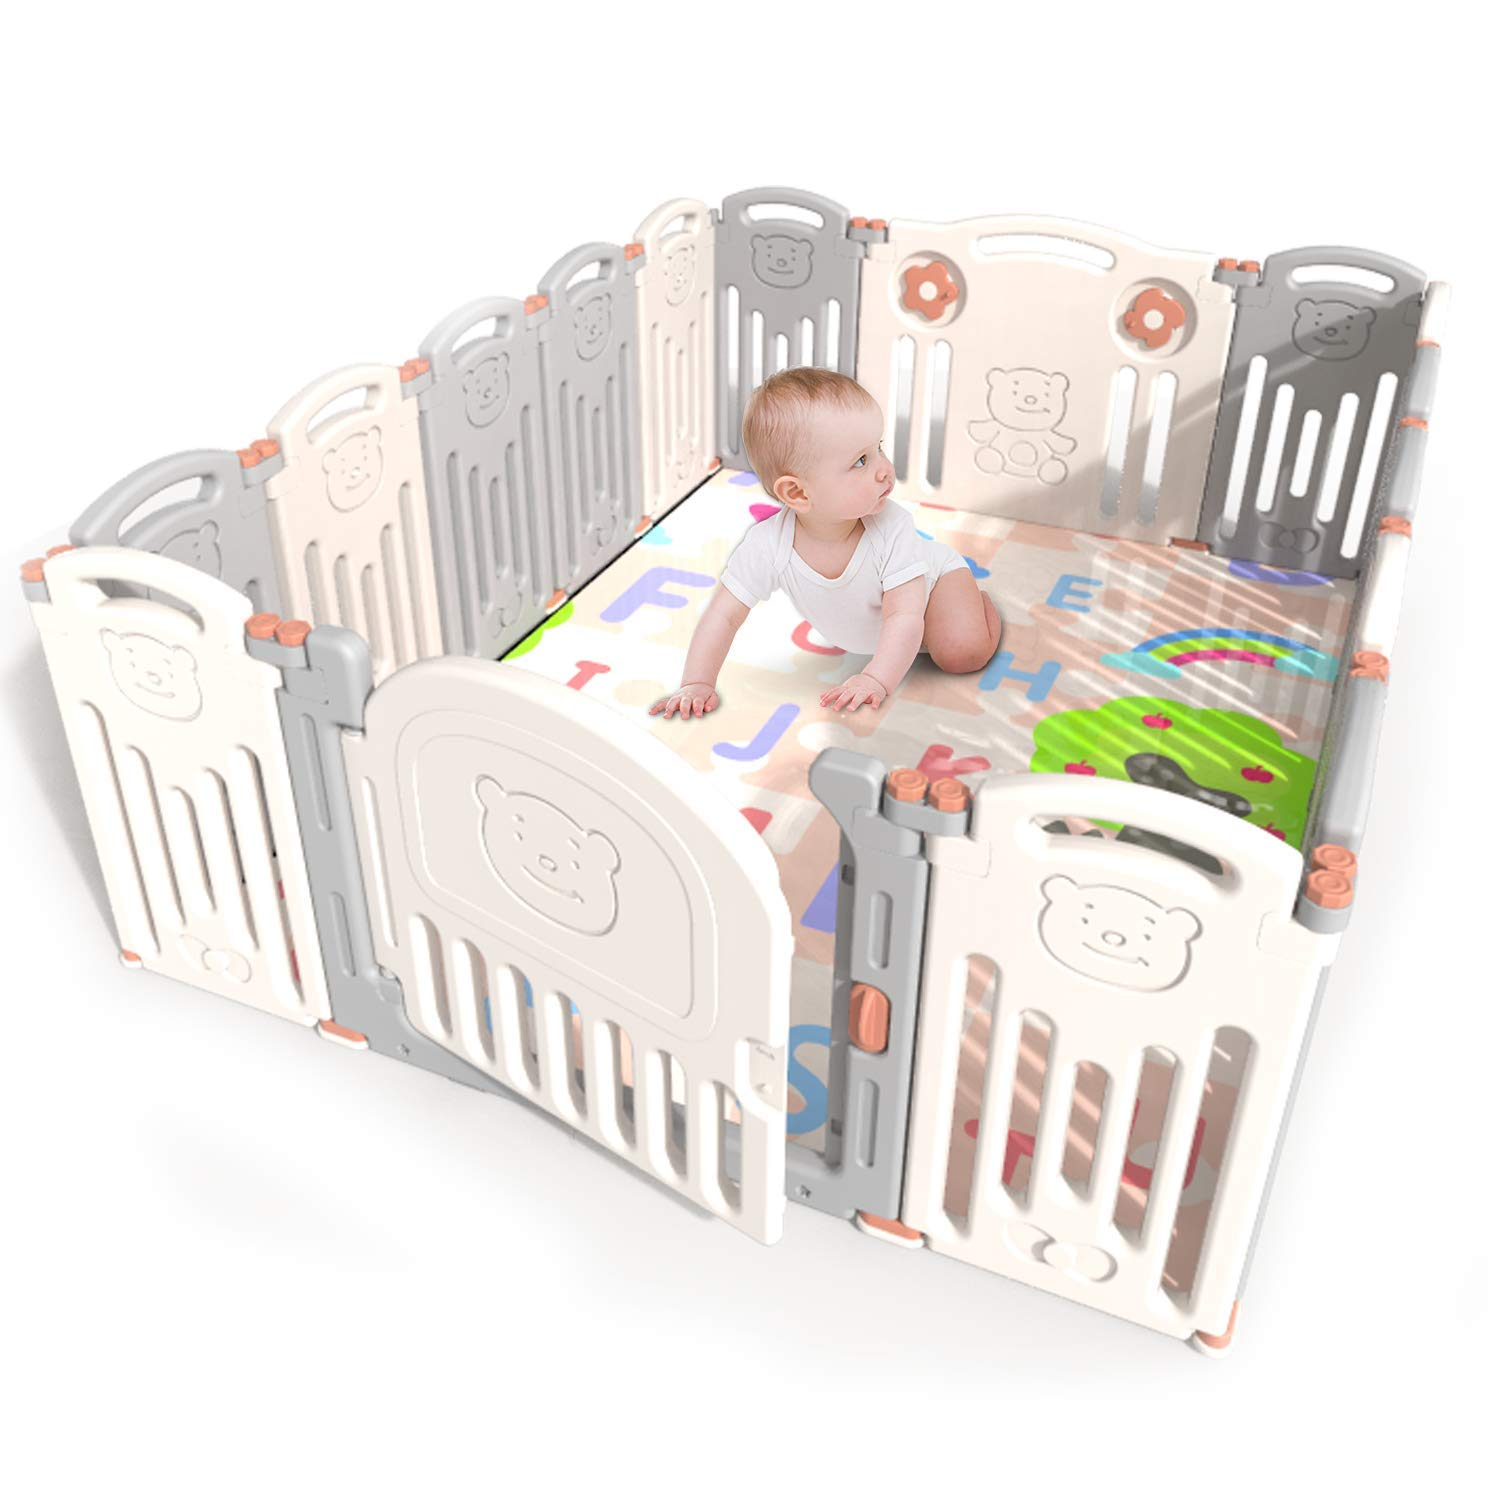 Henf Foldable Baby Playpen Kids 14 Panel Activity Centre Safety Play Yard Indoor Baby Fence Safety Design Learn Walk with Locked Door for 8 Months